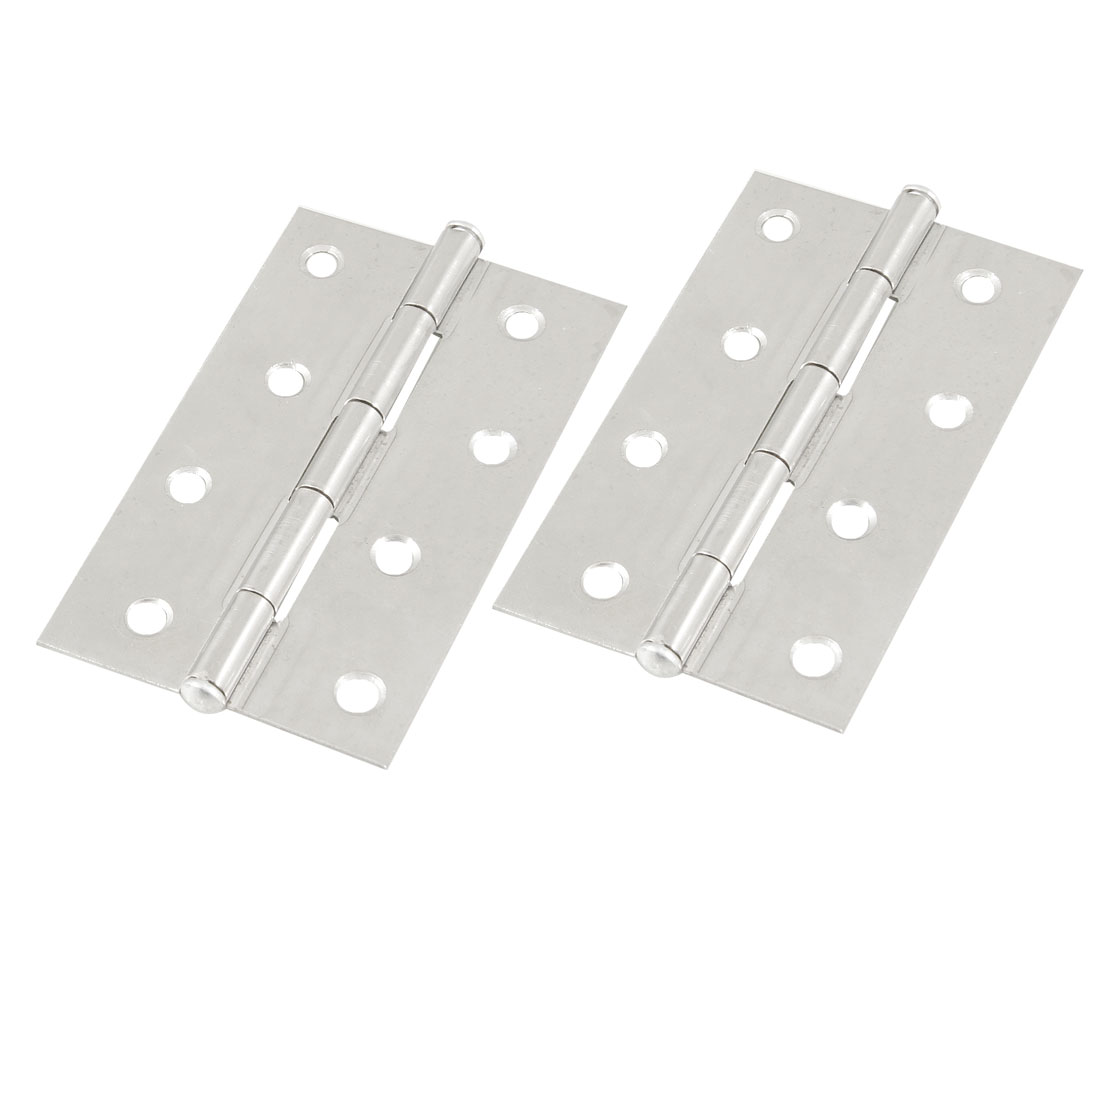 "2 Pcs Cabinet Drawer Door Stainless Steel Butt Hinges 3.4"" Long"